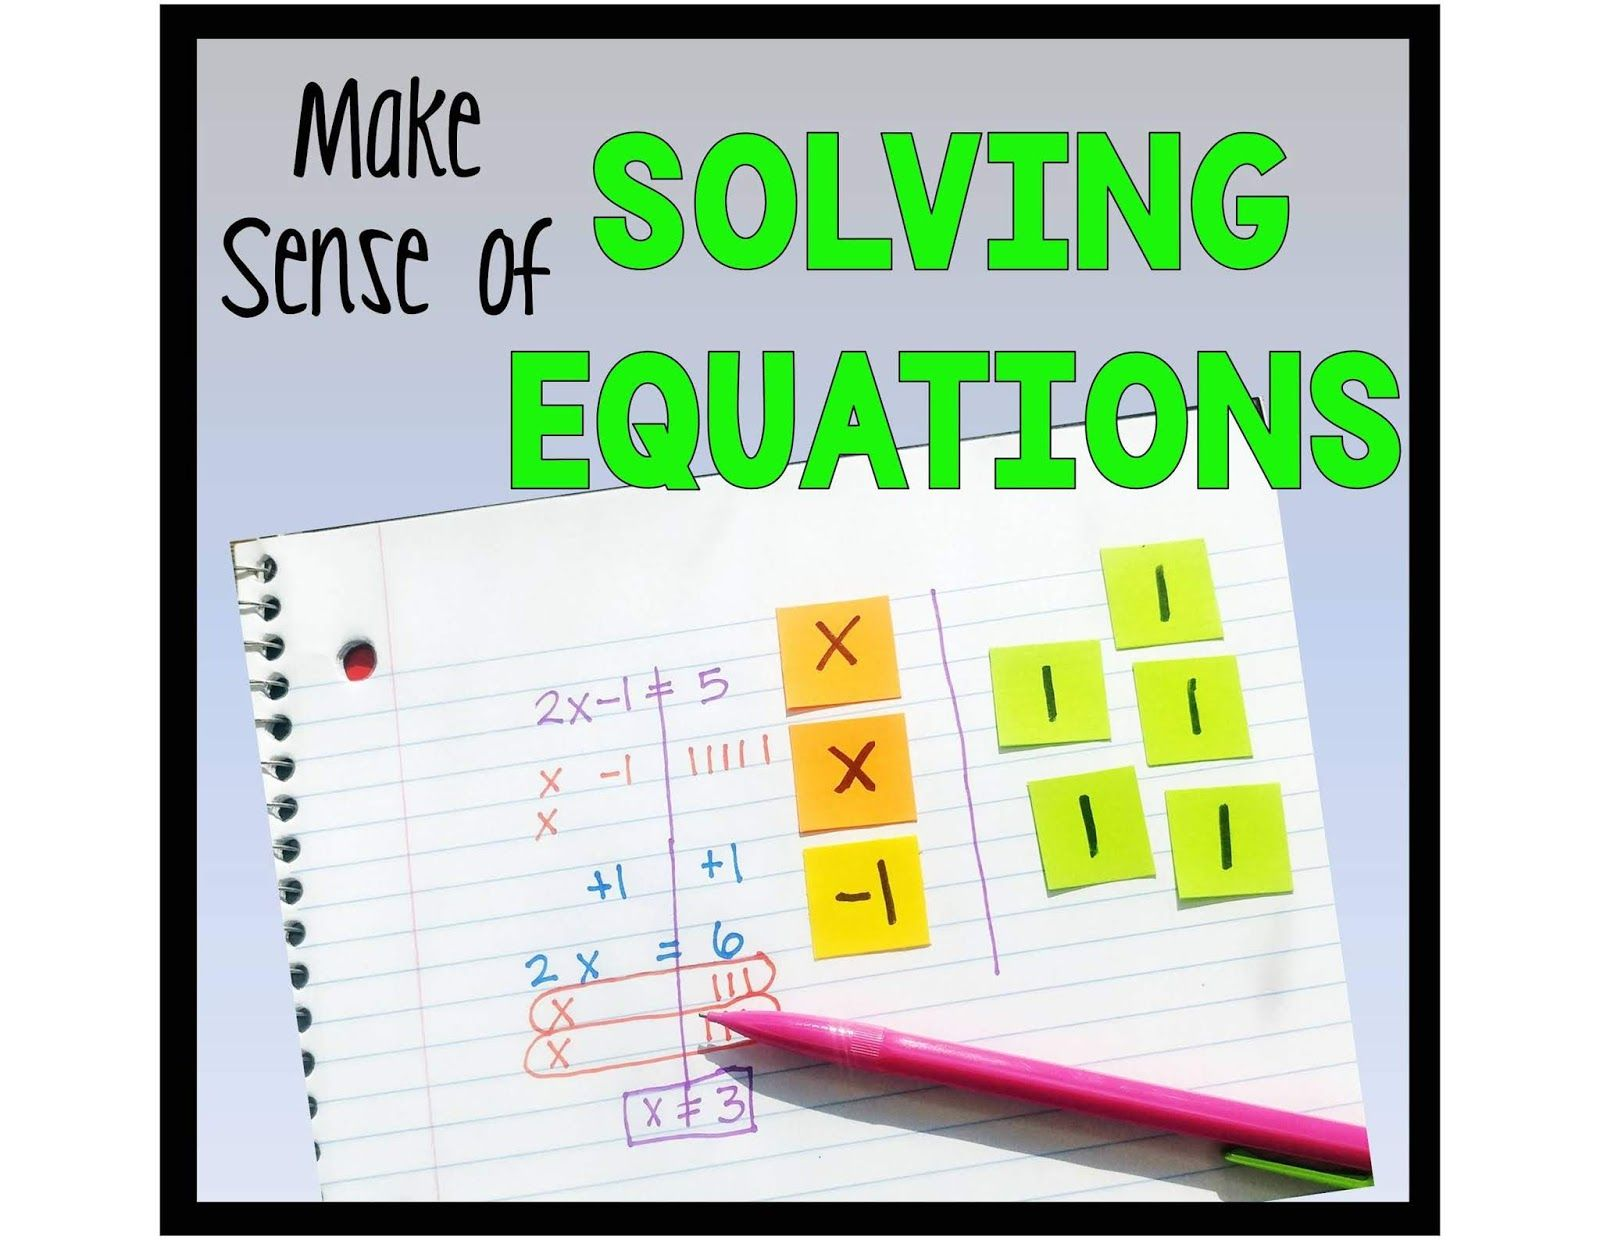 How To Effectively Teach Solving Equations